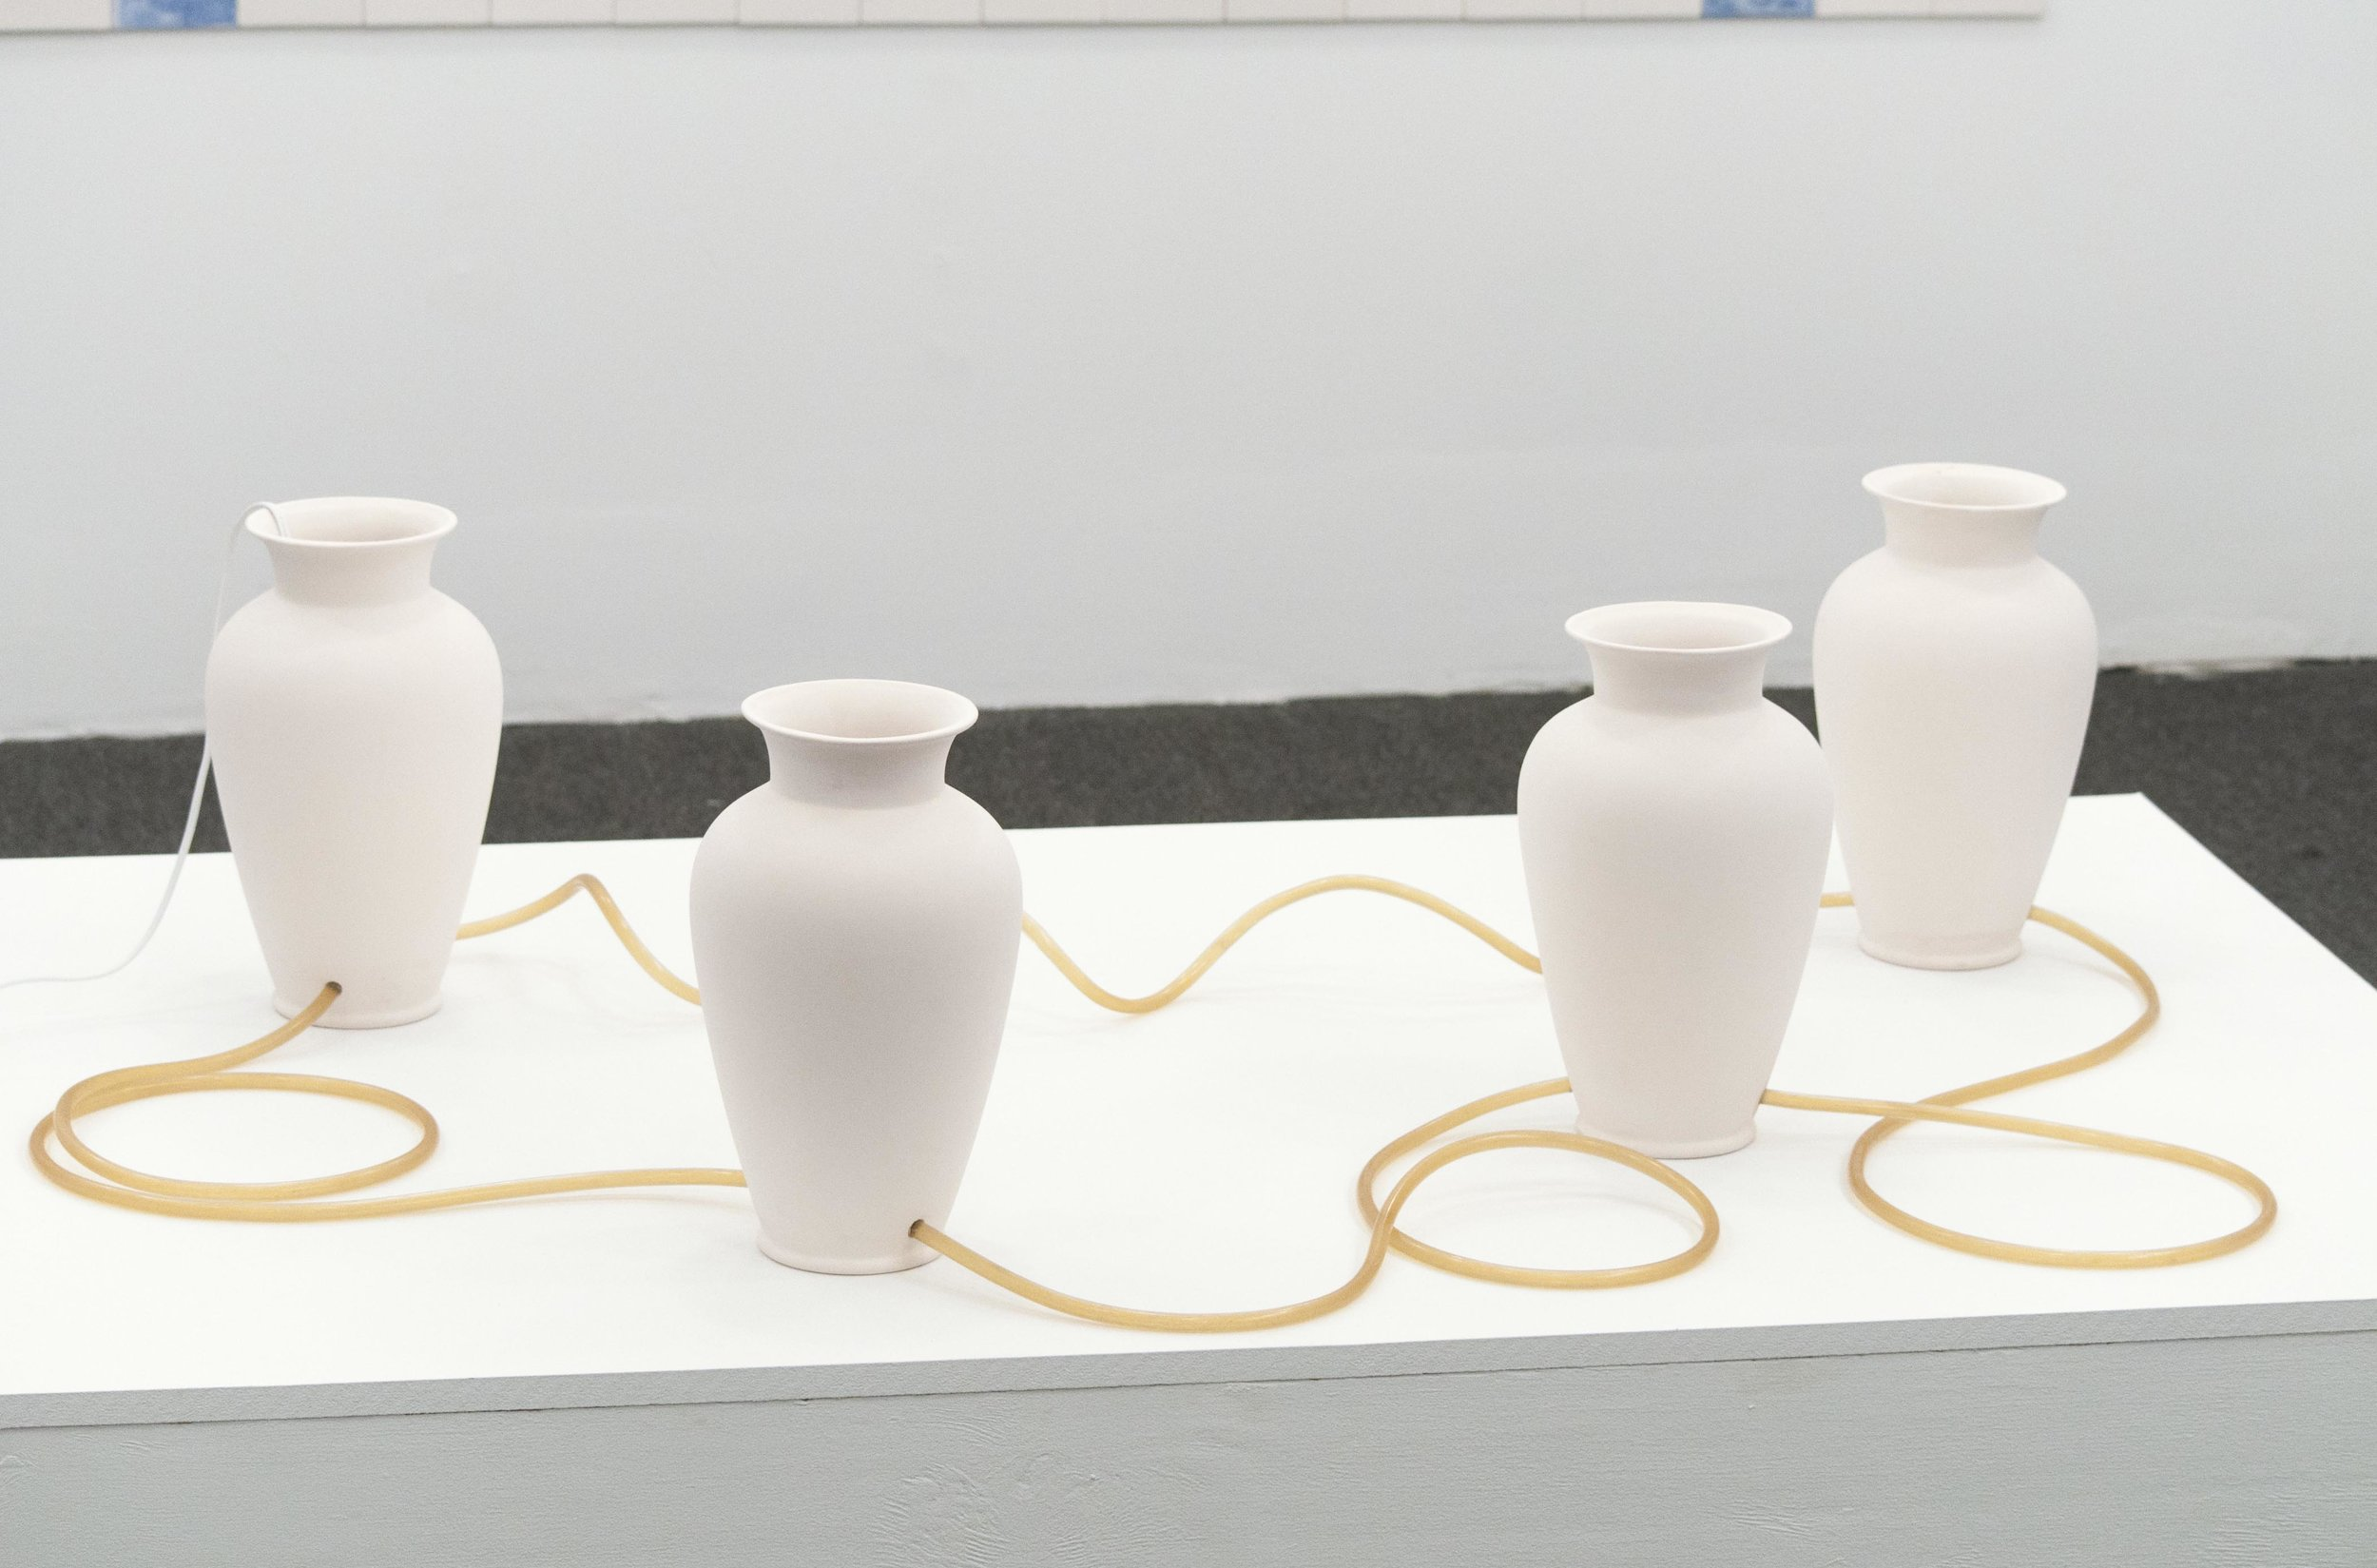 "Title: Untitled (Self-conditioning) Artist: Tiffany Jaeyeon Shin Year: 2017 Medium: Bisque, tube, motor, Hyangyak Dimensions: Each vase 12"" x 8"" x 8"" Price: $4000"